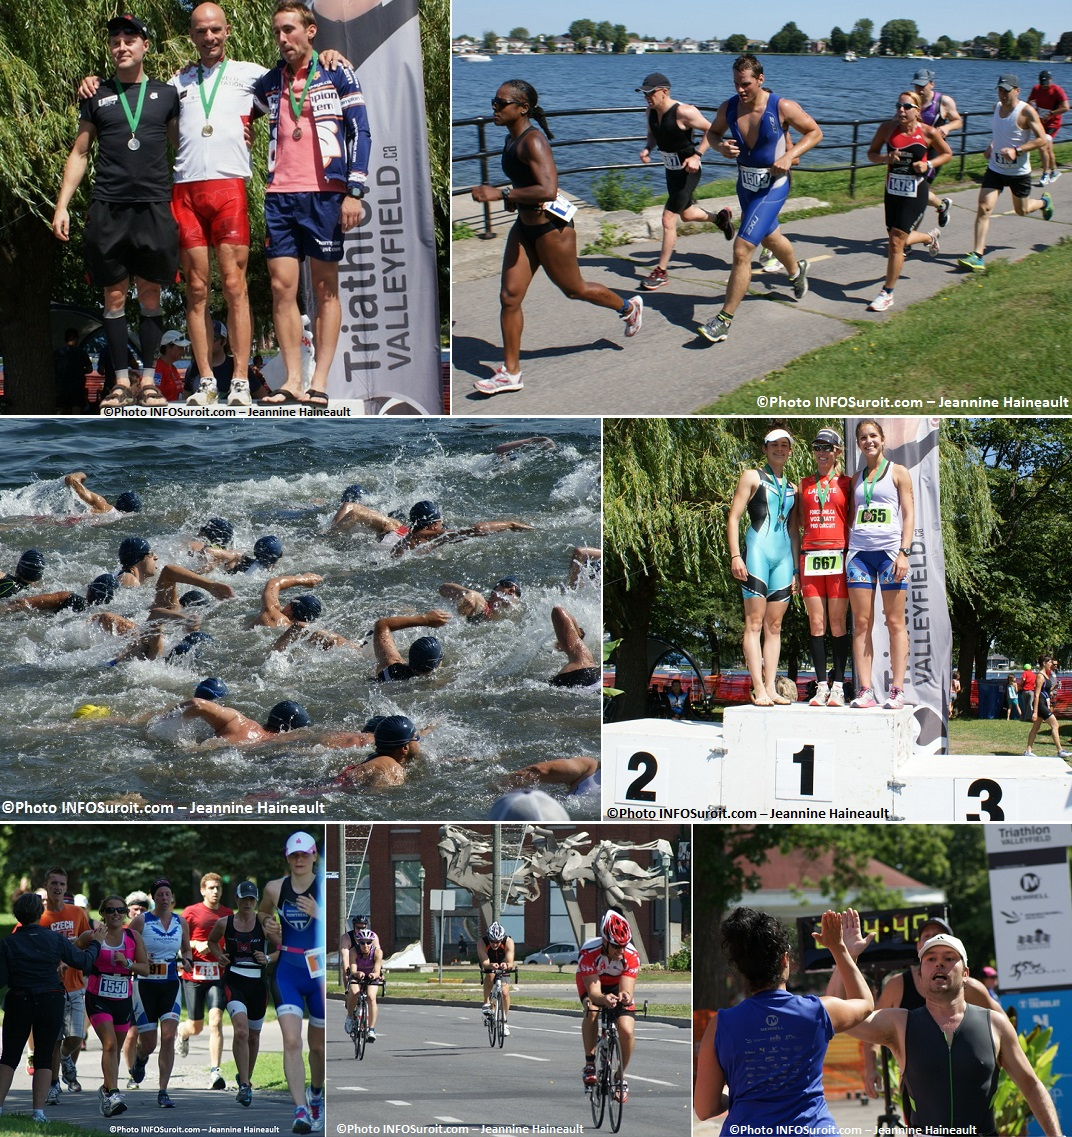 Triathlon-Valleyfield-2013-podium-duathlon-Courses-a-pied-pres-du-lac-Natation-podium-Duathlon-femmes-Photos-INFOSuroit-Jeannine_Haineault